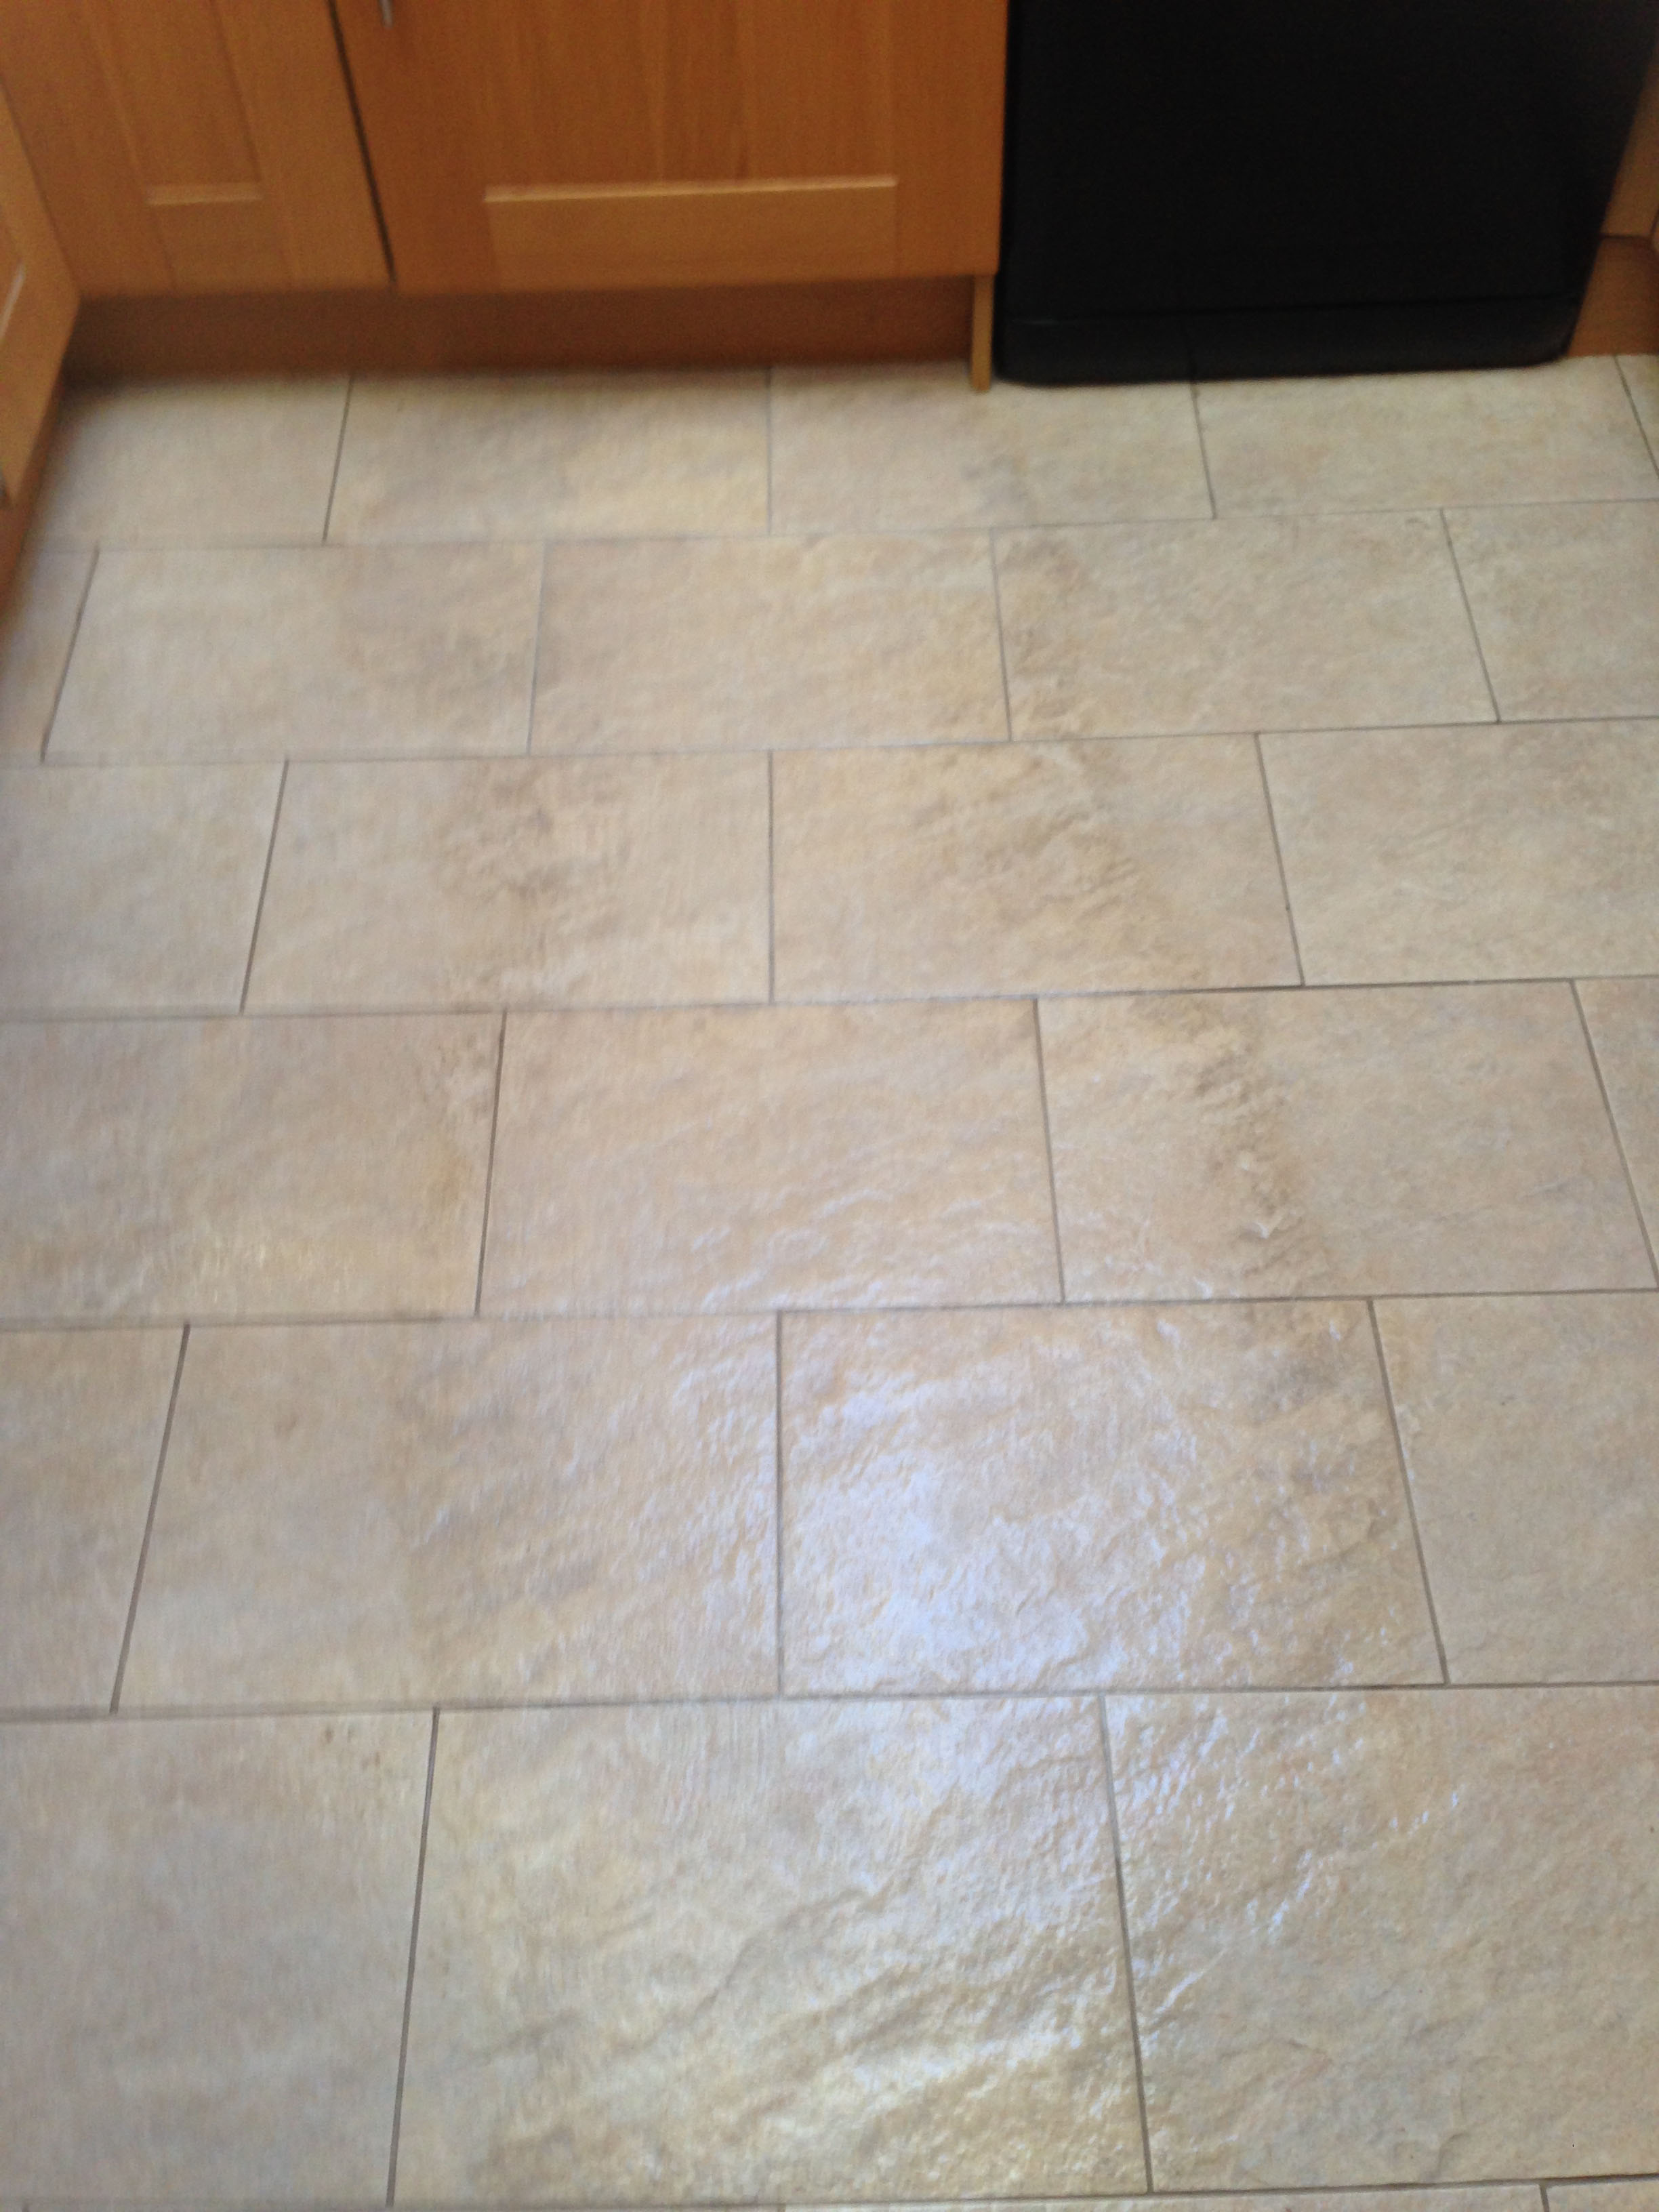 Cleaning Dirty Bathroom Floor Tiles: Deep cleaning quarry tile floors.